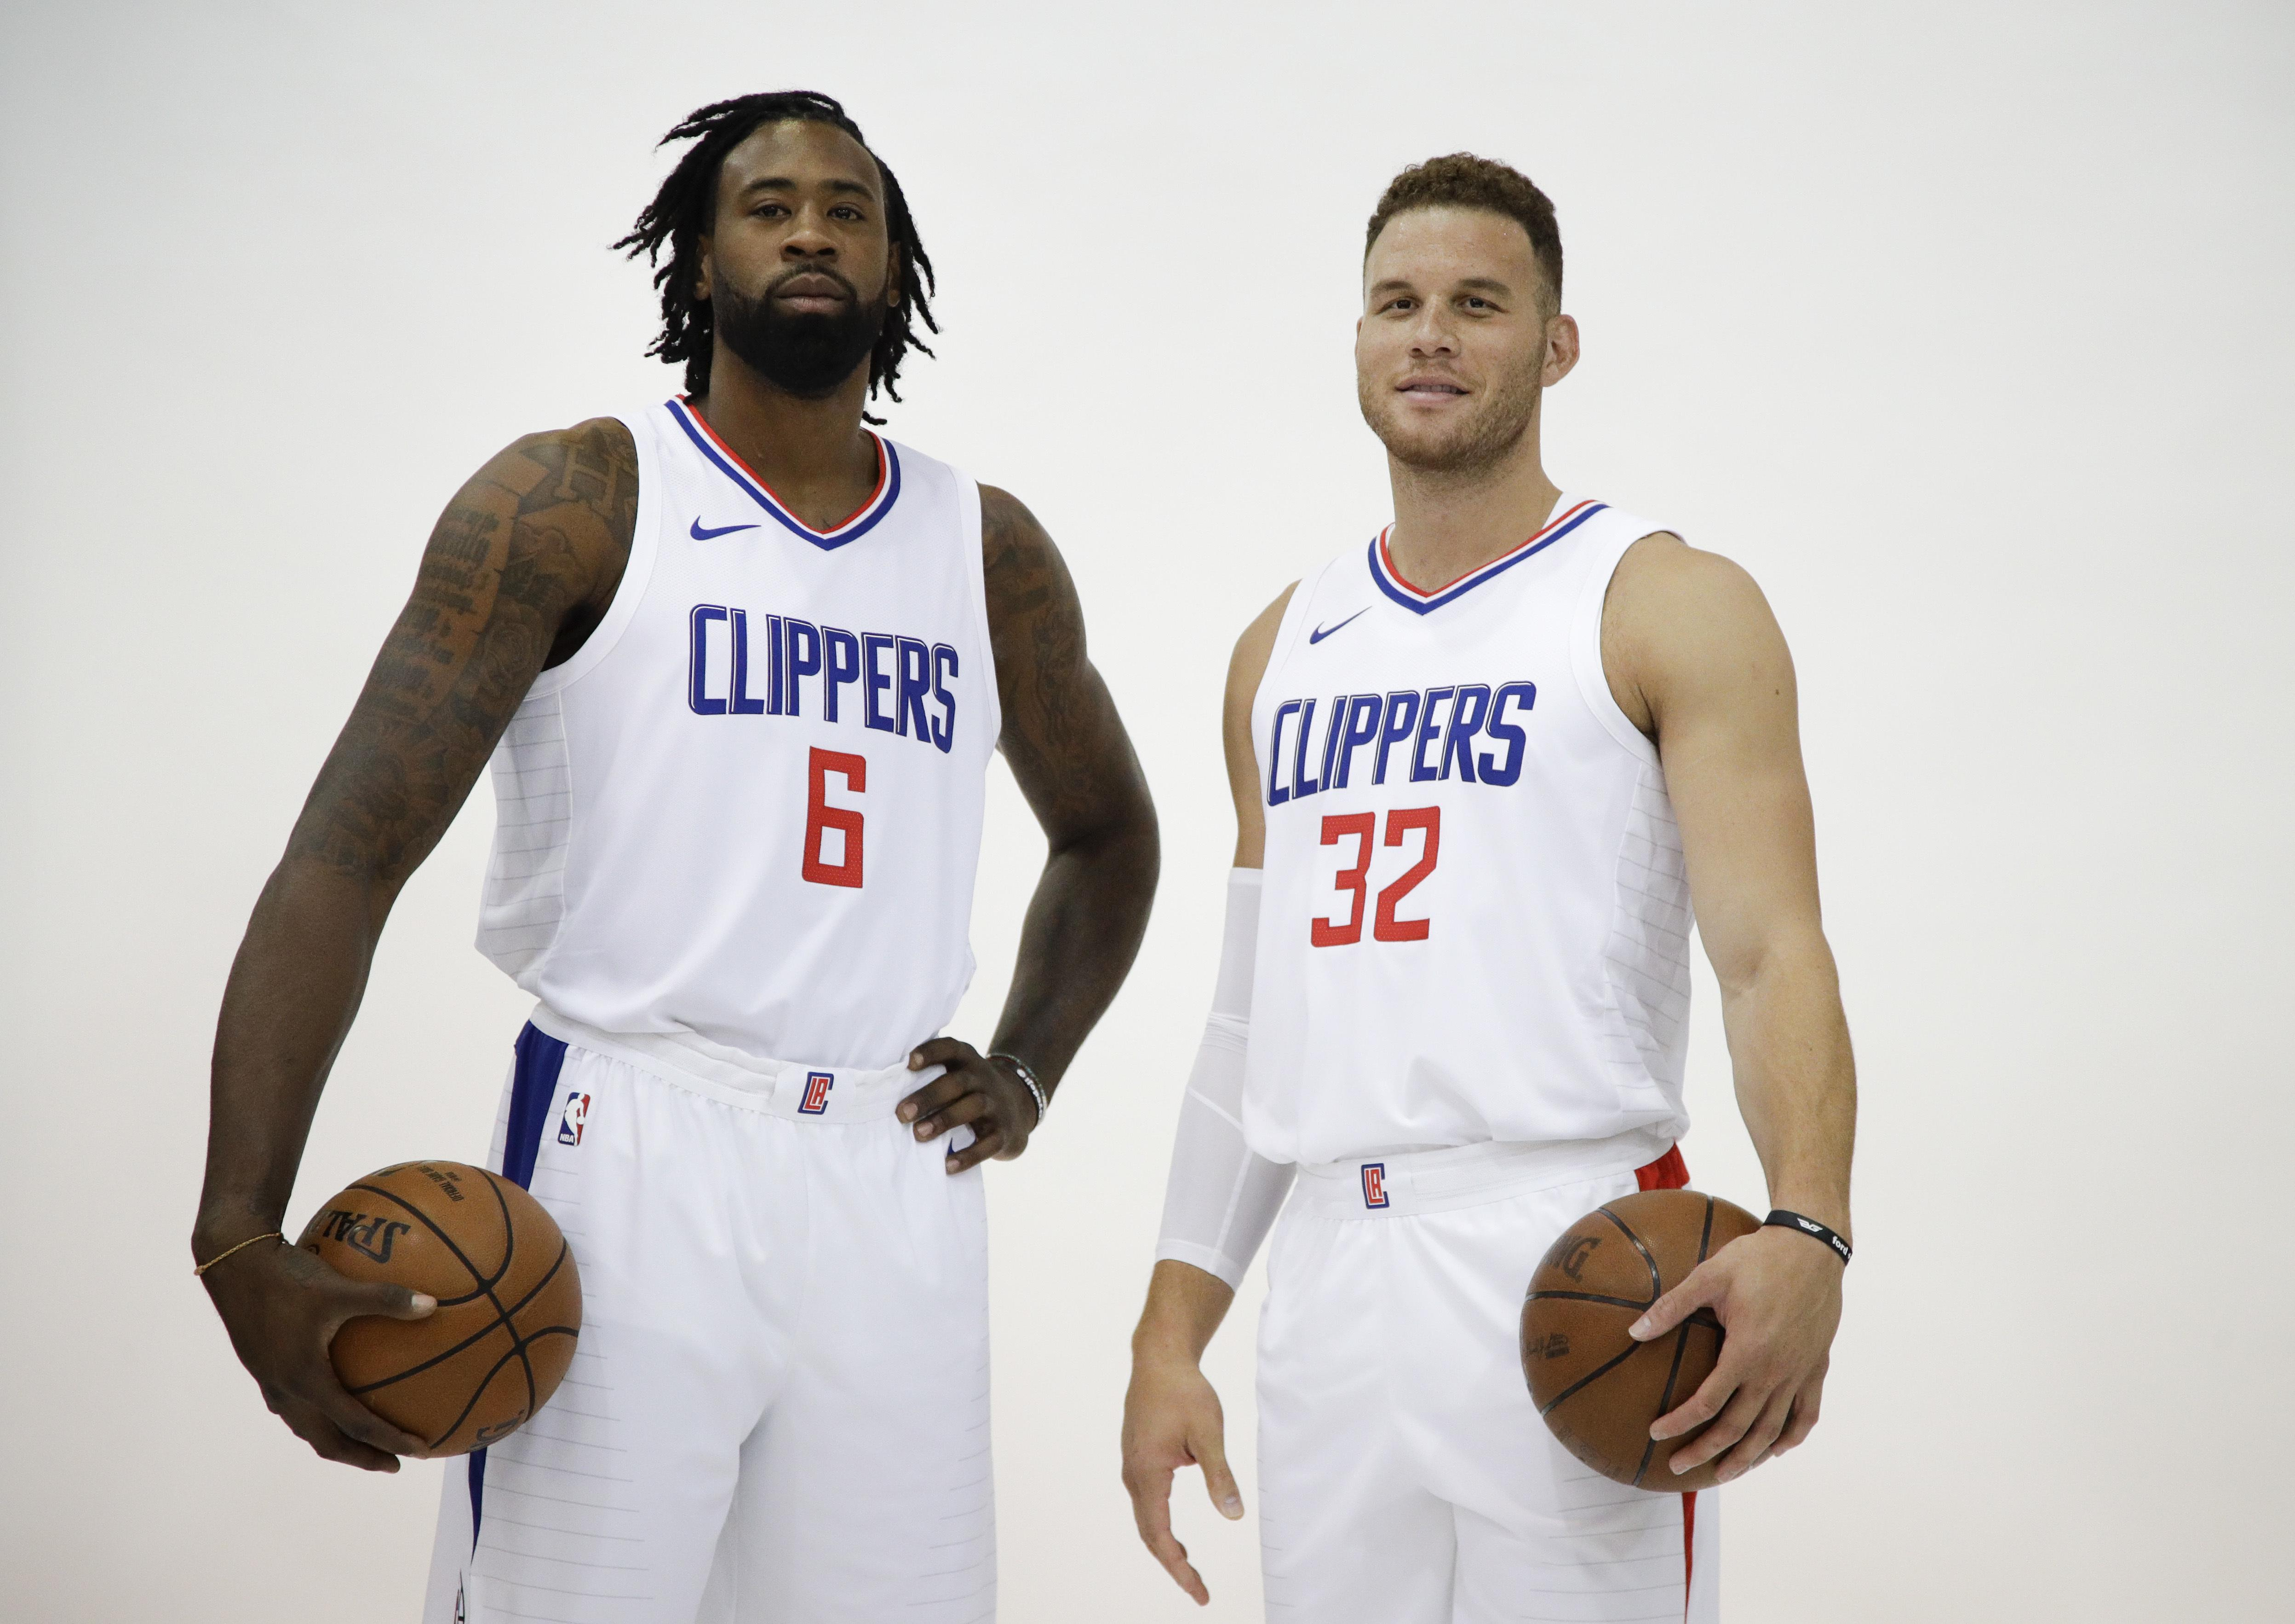 Clippers_preview_basketball_36793